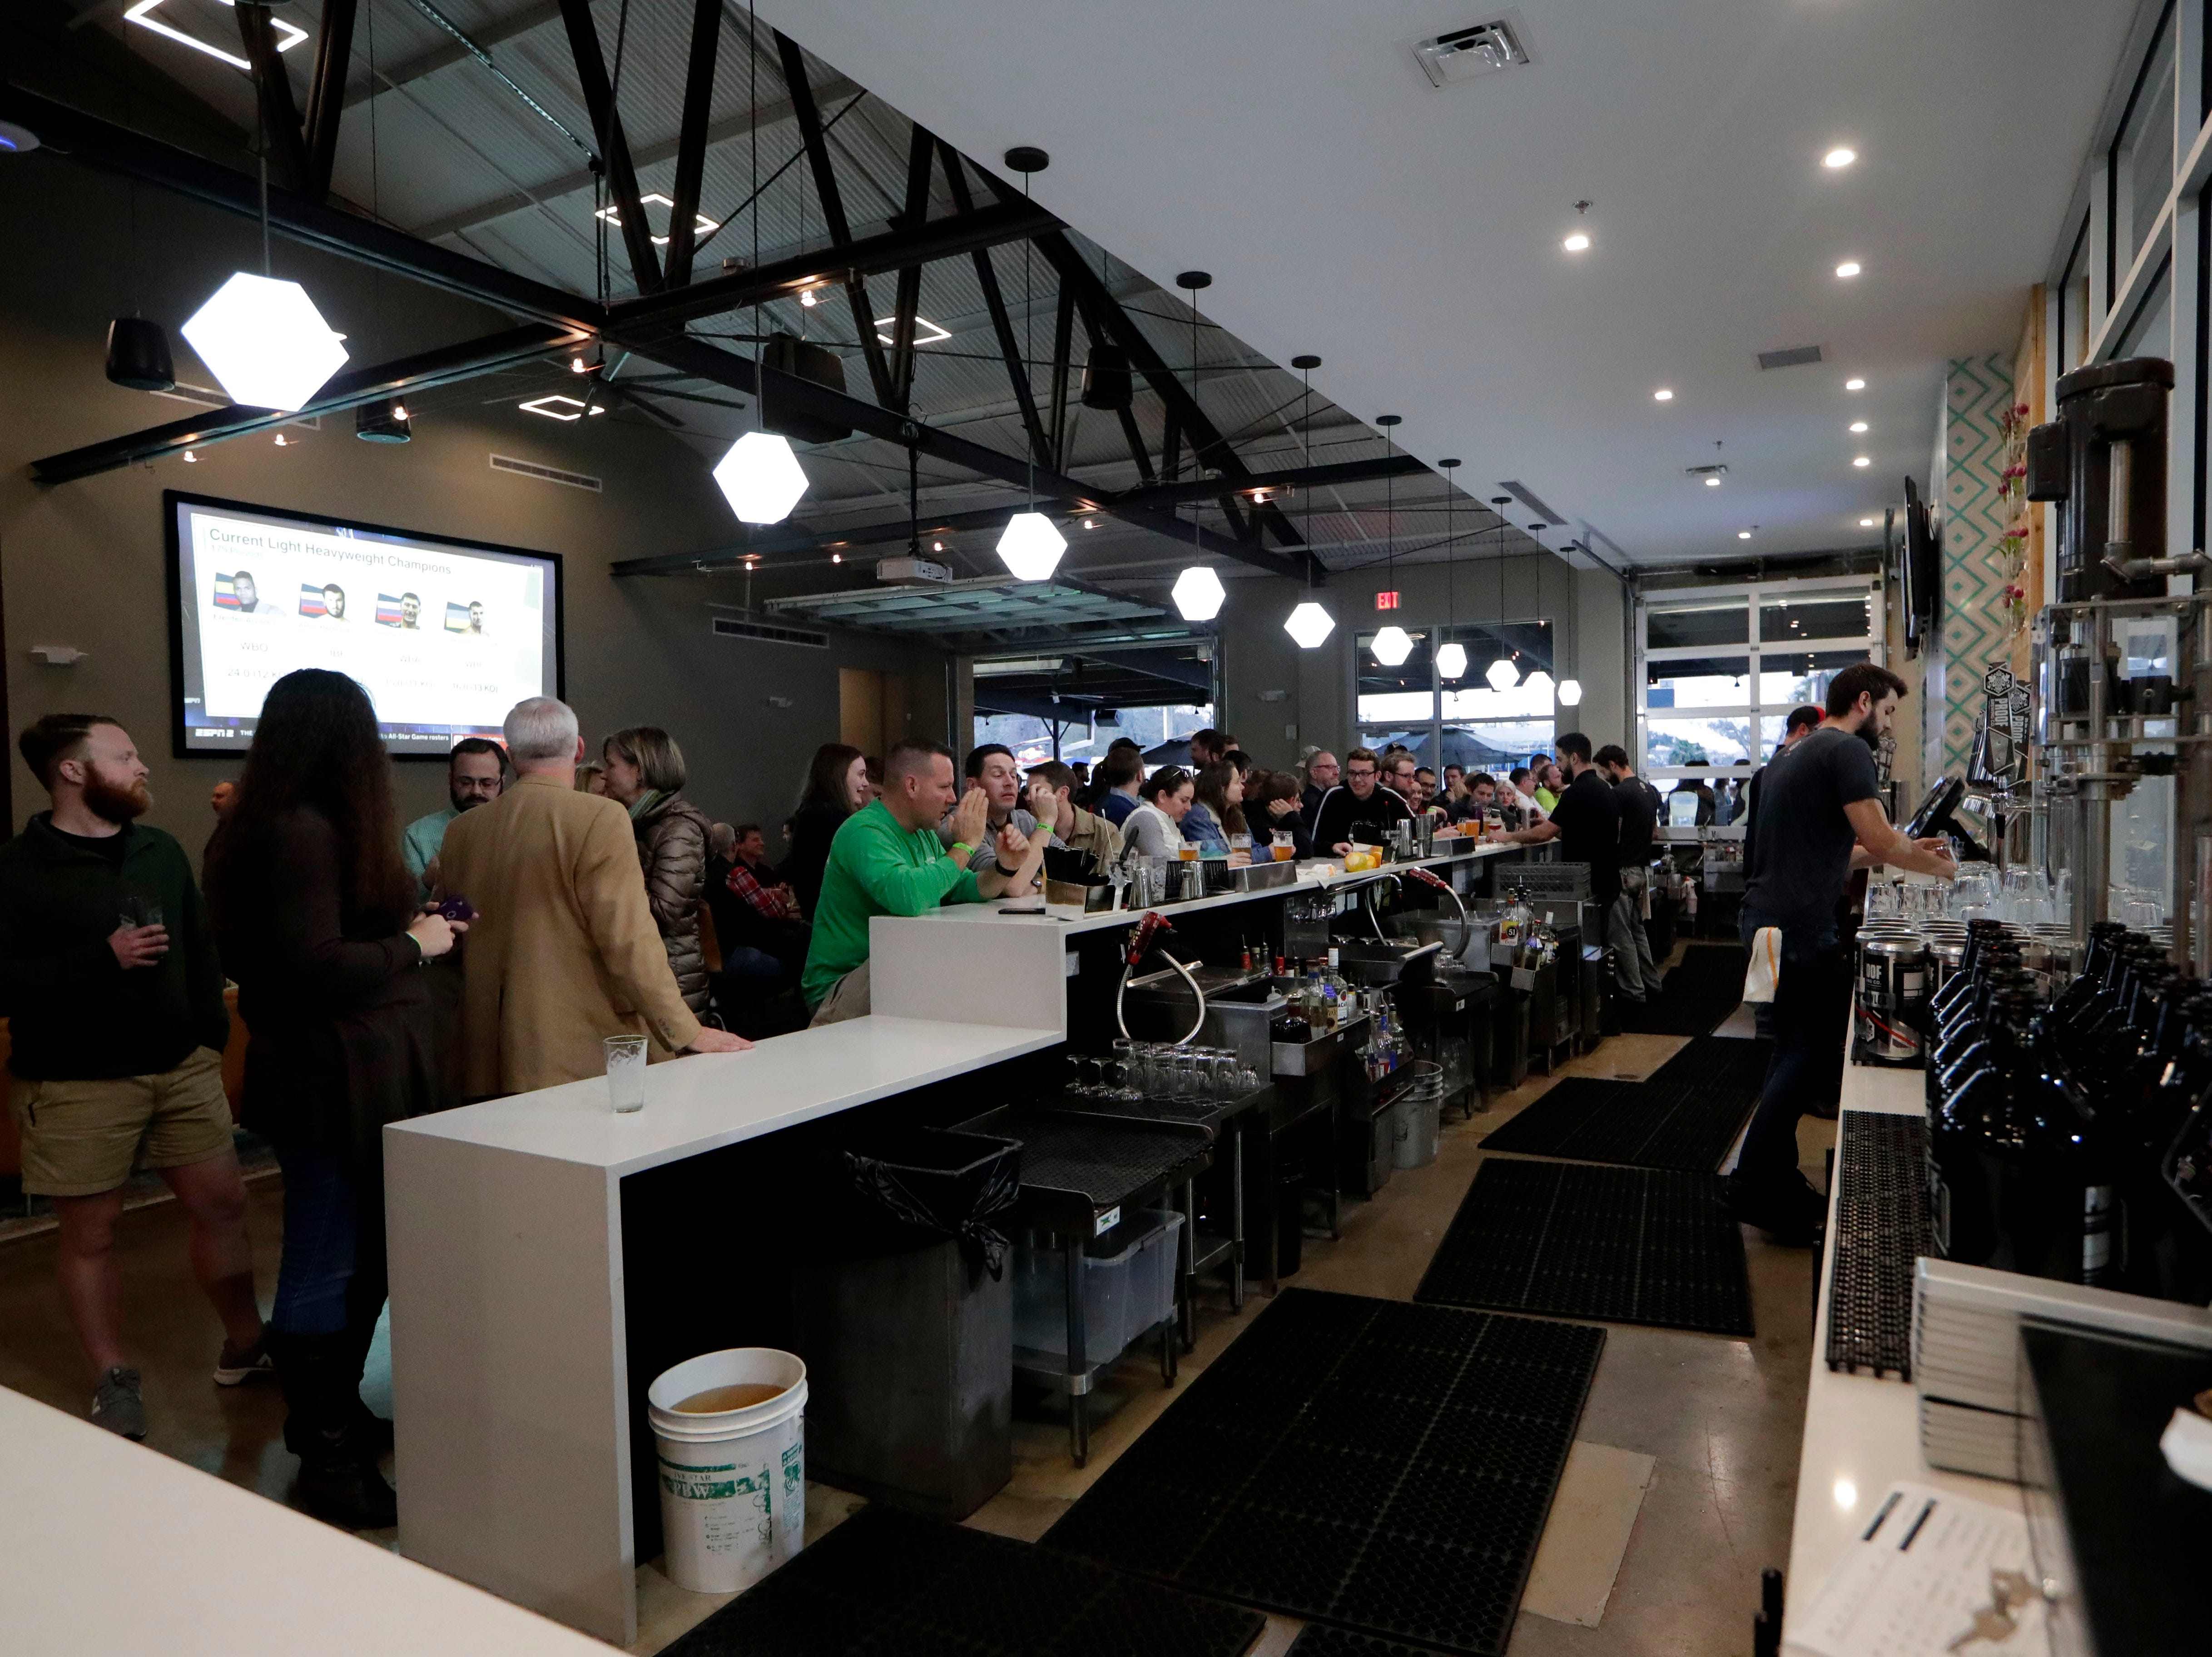 The bar at the new Proof Brewery lined with people chatting and placing drink orders at the soft opening Friday evening, Feb. 1, 2019.